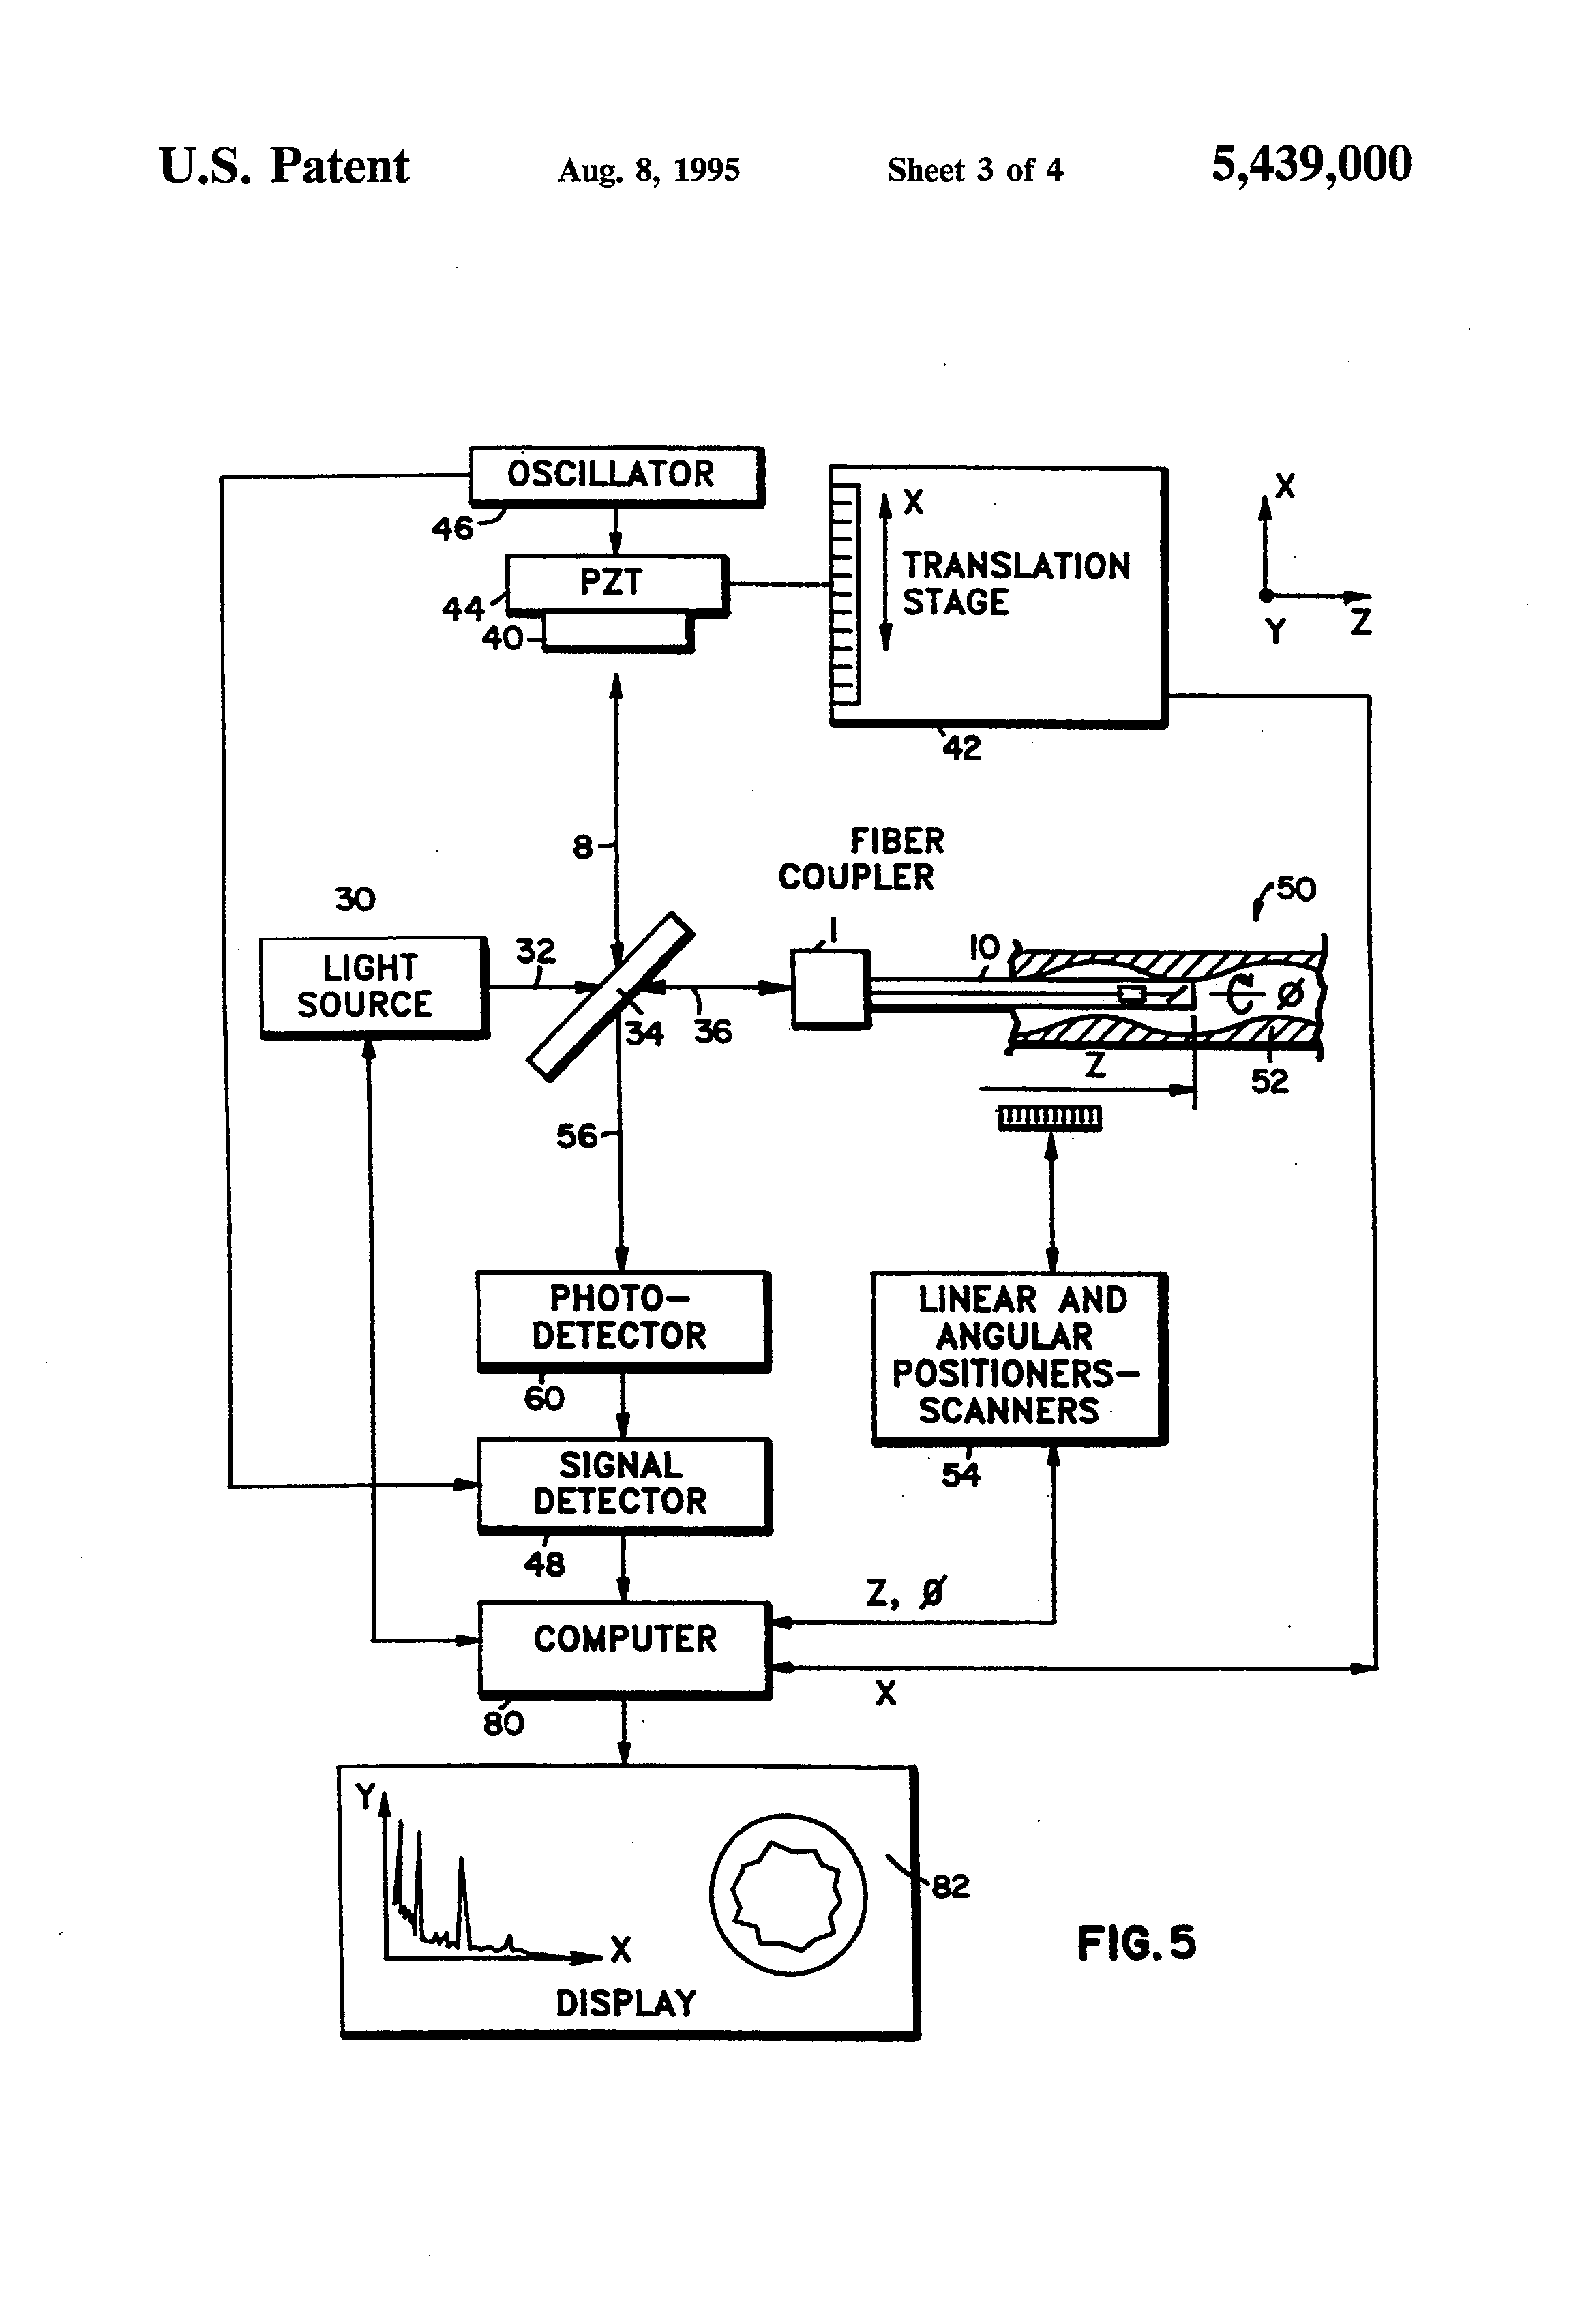 Patent Drawing. Patent US5439000   Method of diagnosing tissue with guidewire